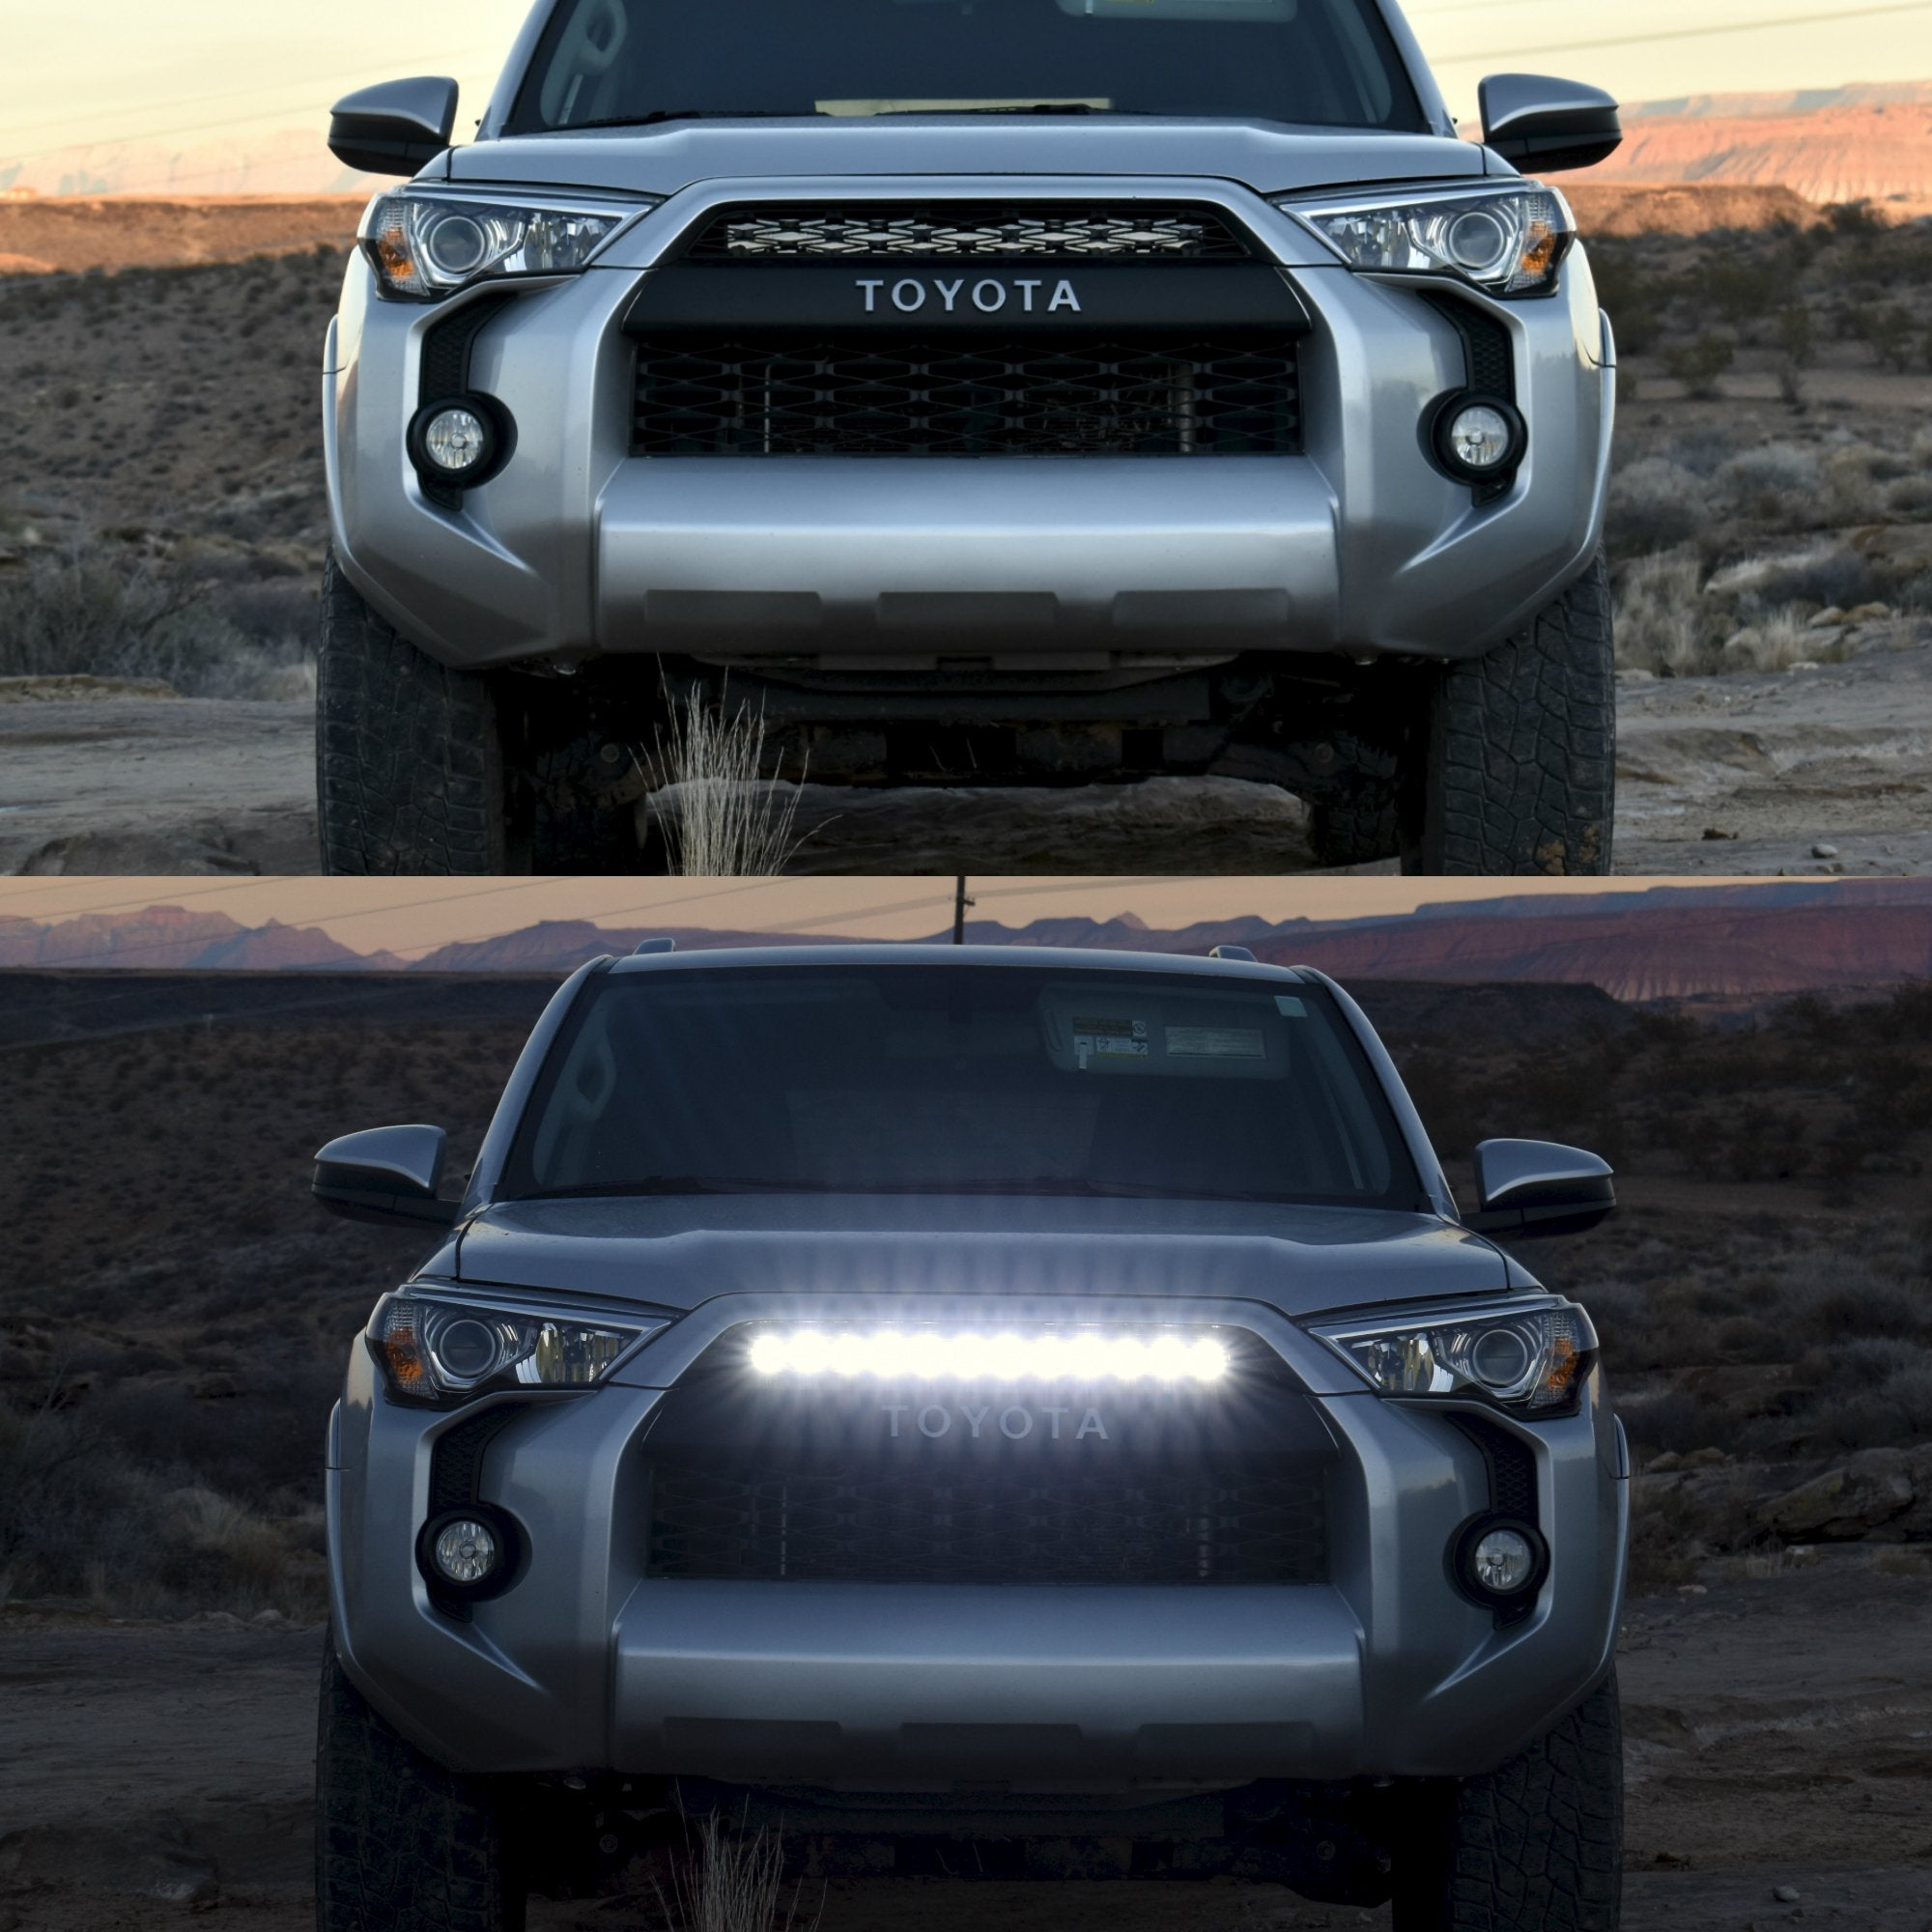 Drz Off Road Toyota 4runner Aftermarket Parts 5th Gen Drz Off Road